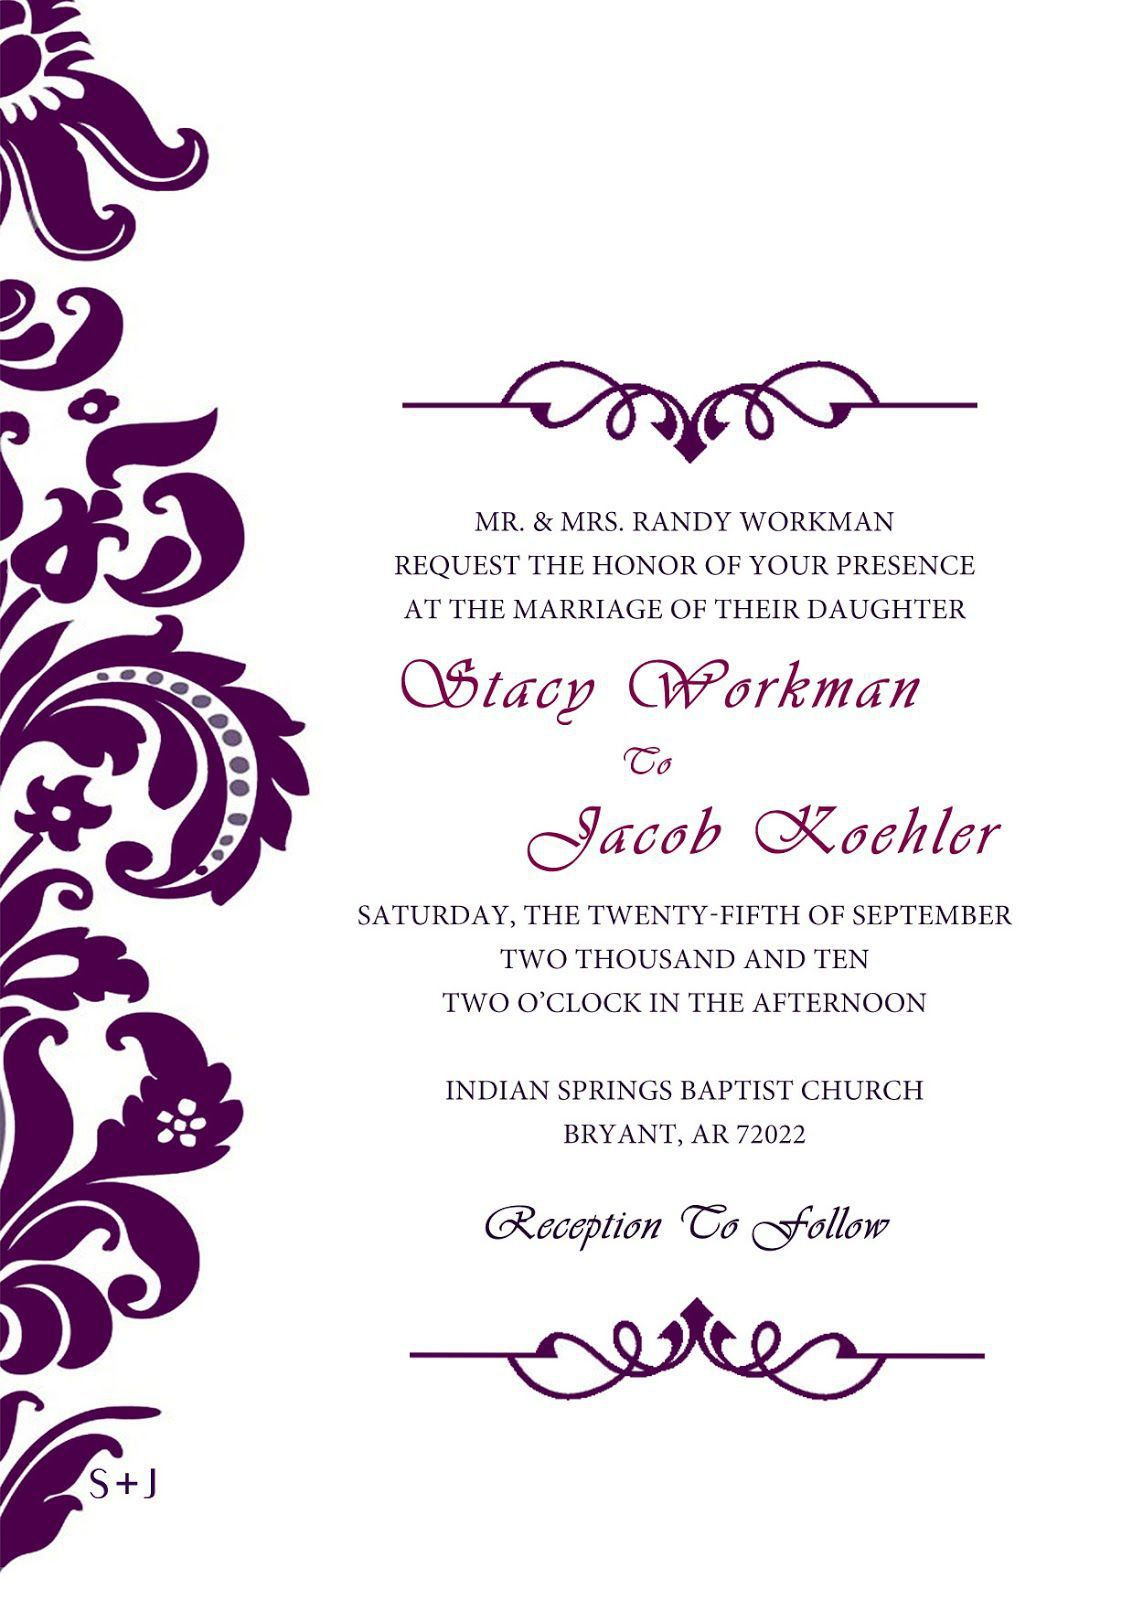 Wedding Invitation Cards Design Online Free Wedding Invitations